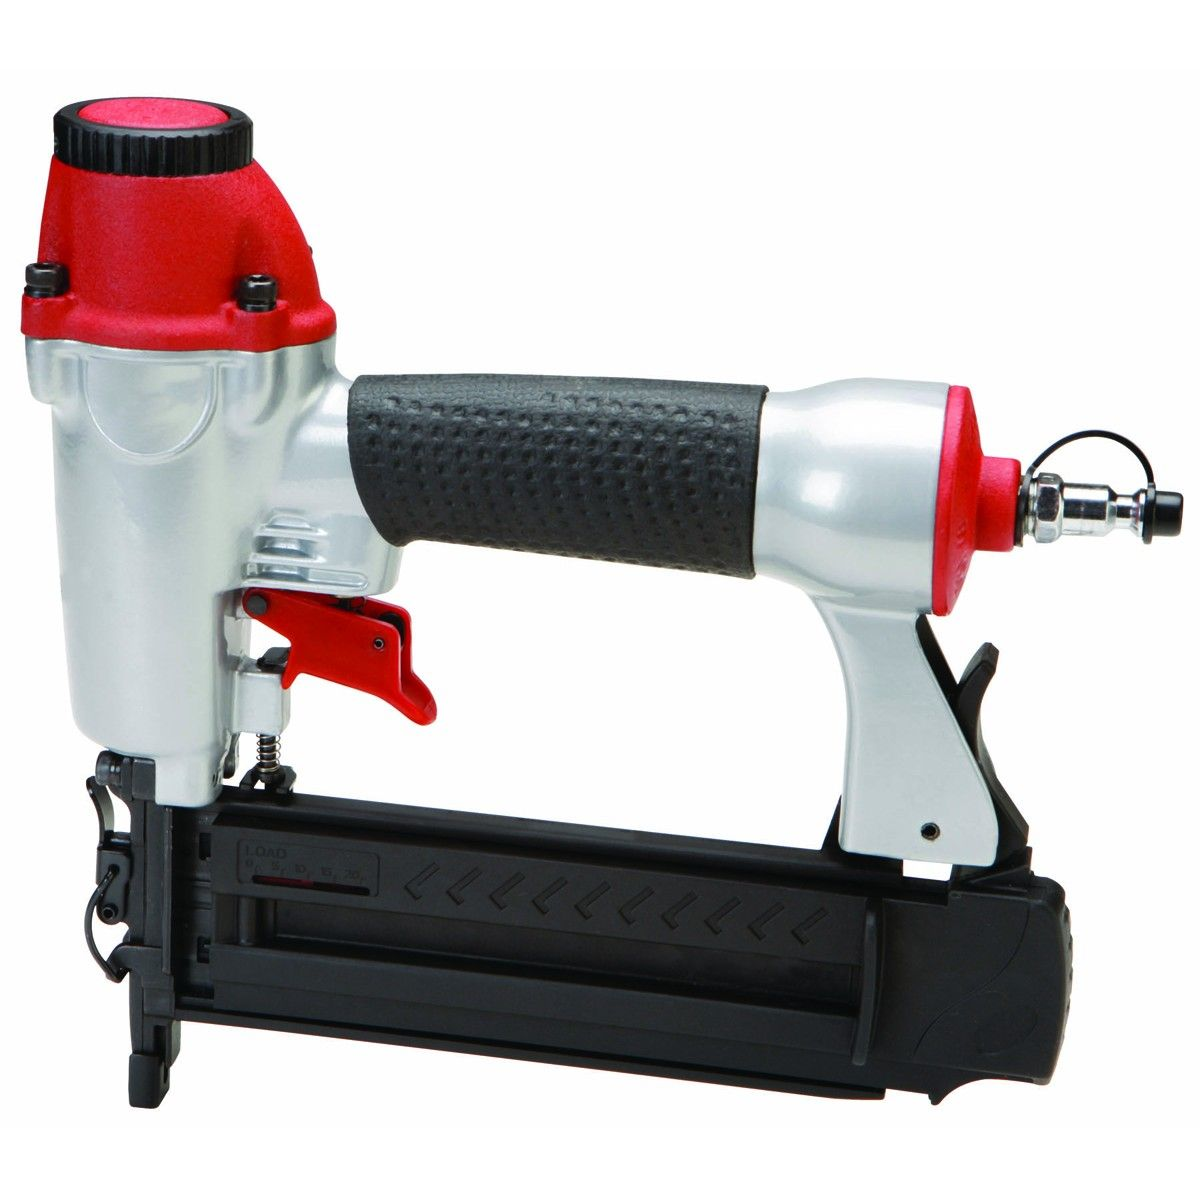 only 1499 with coupon 18091903 central pneumatic 68021 18 gauge brad nailer